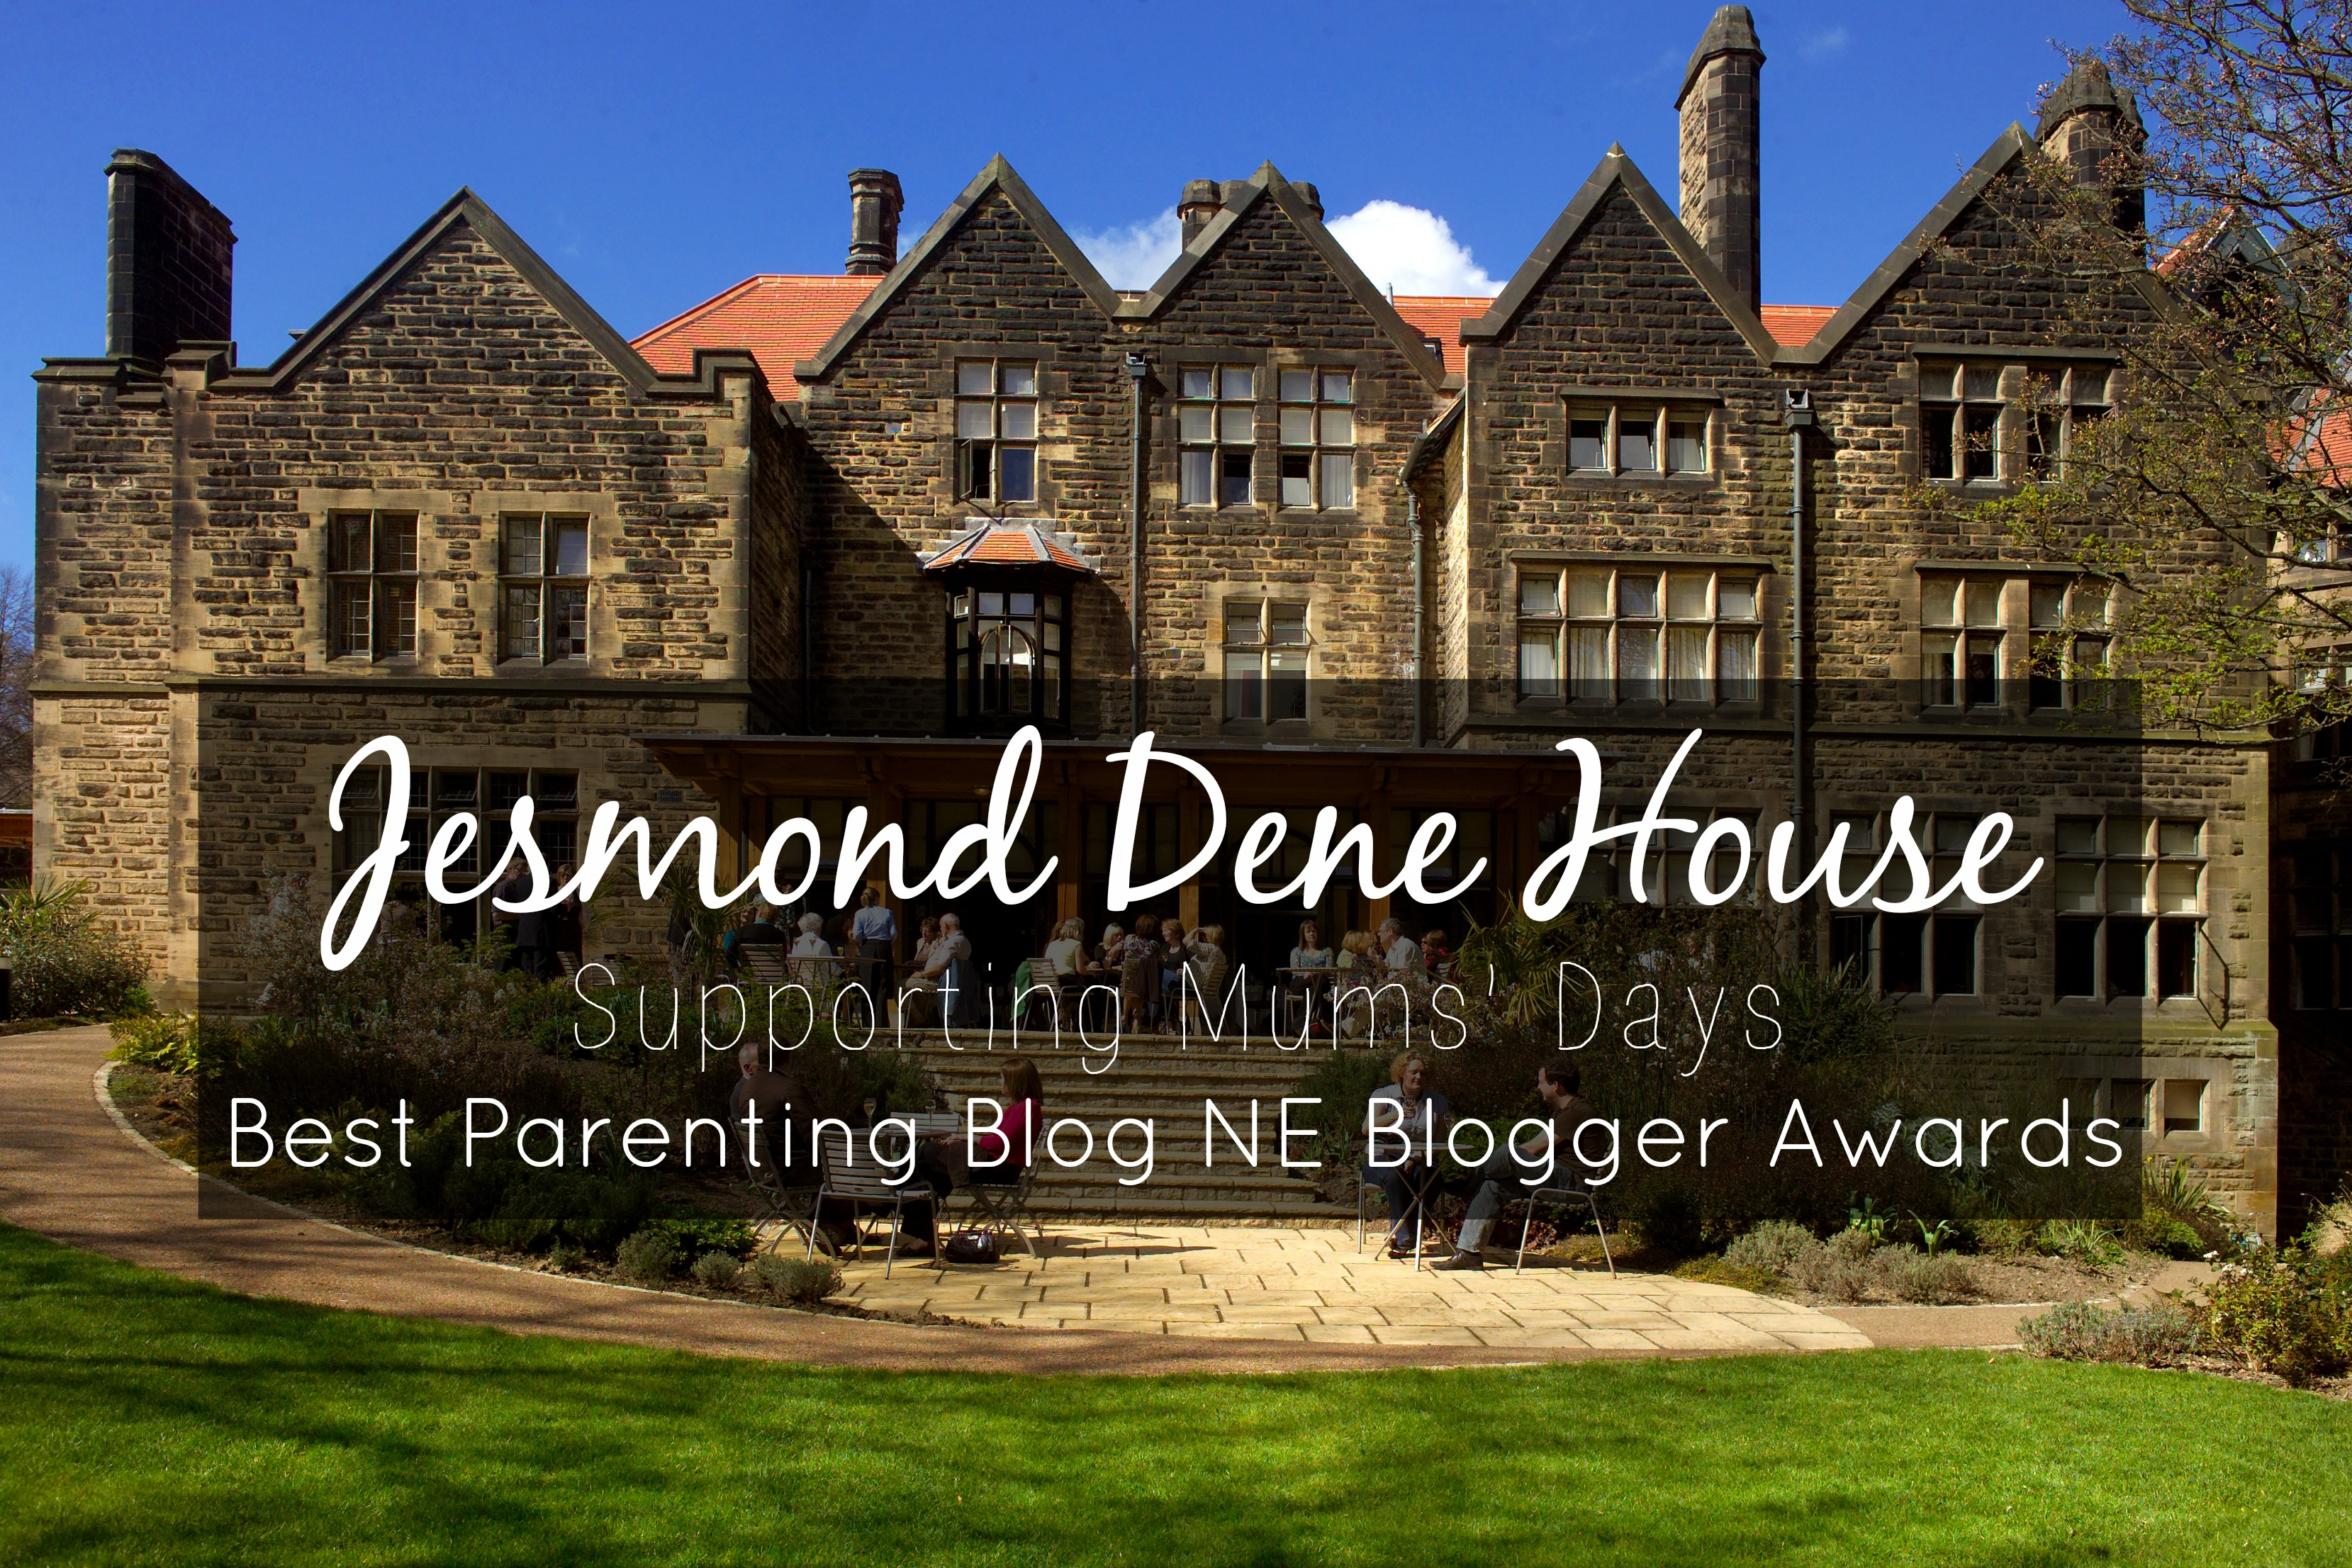 Jesmond Dene House - click here for the full photo and video tour of the Noble Suite: http://mumsdays.com/jesmond-dene-house/